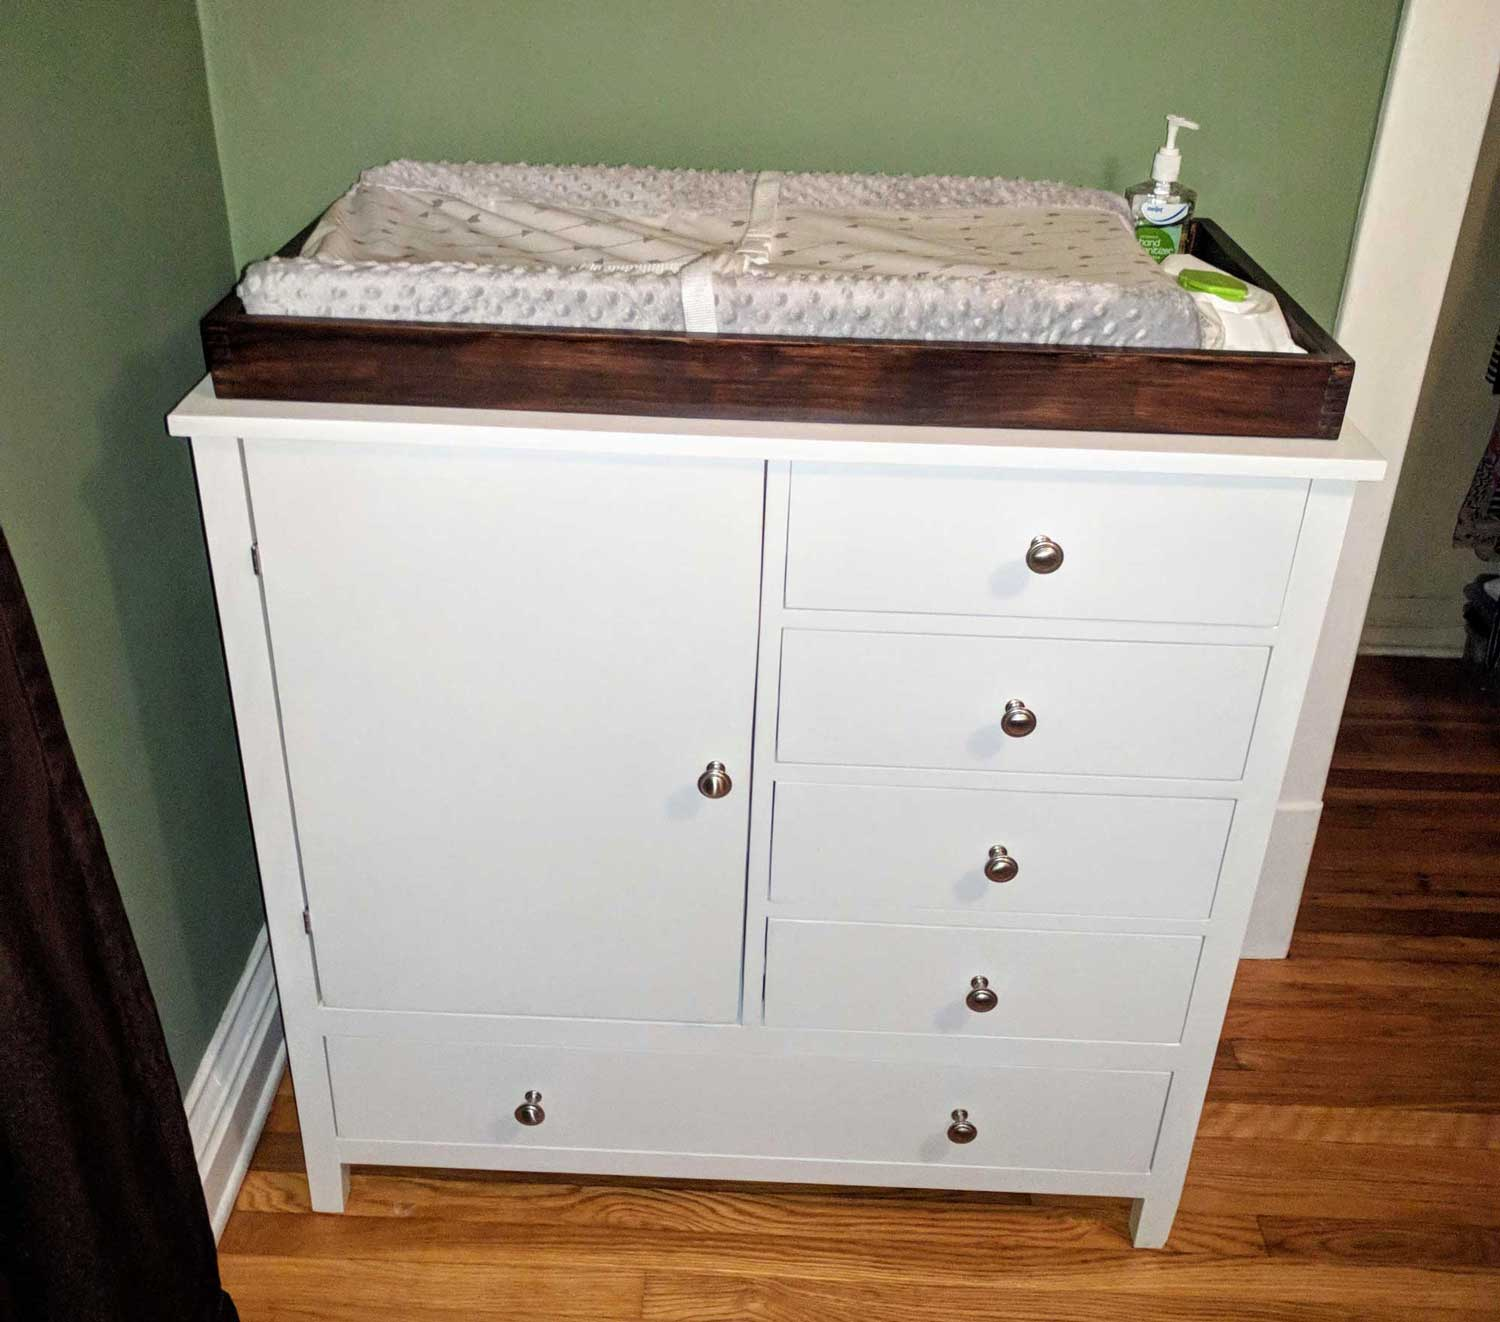 First Piece of Furniture